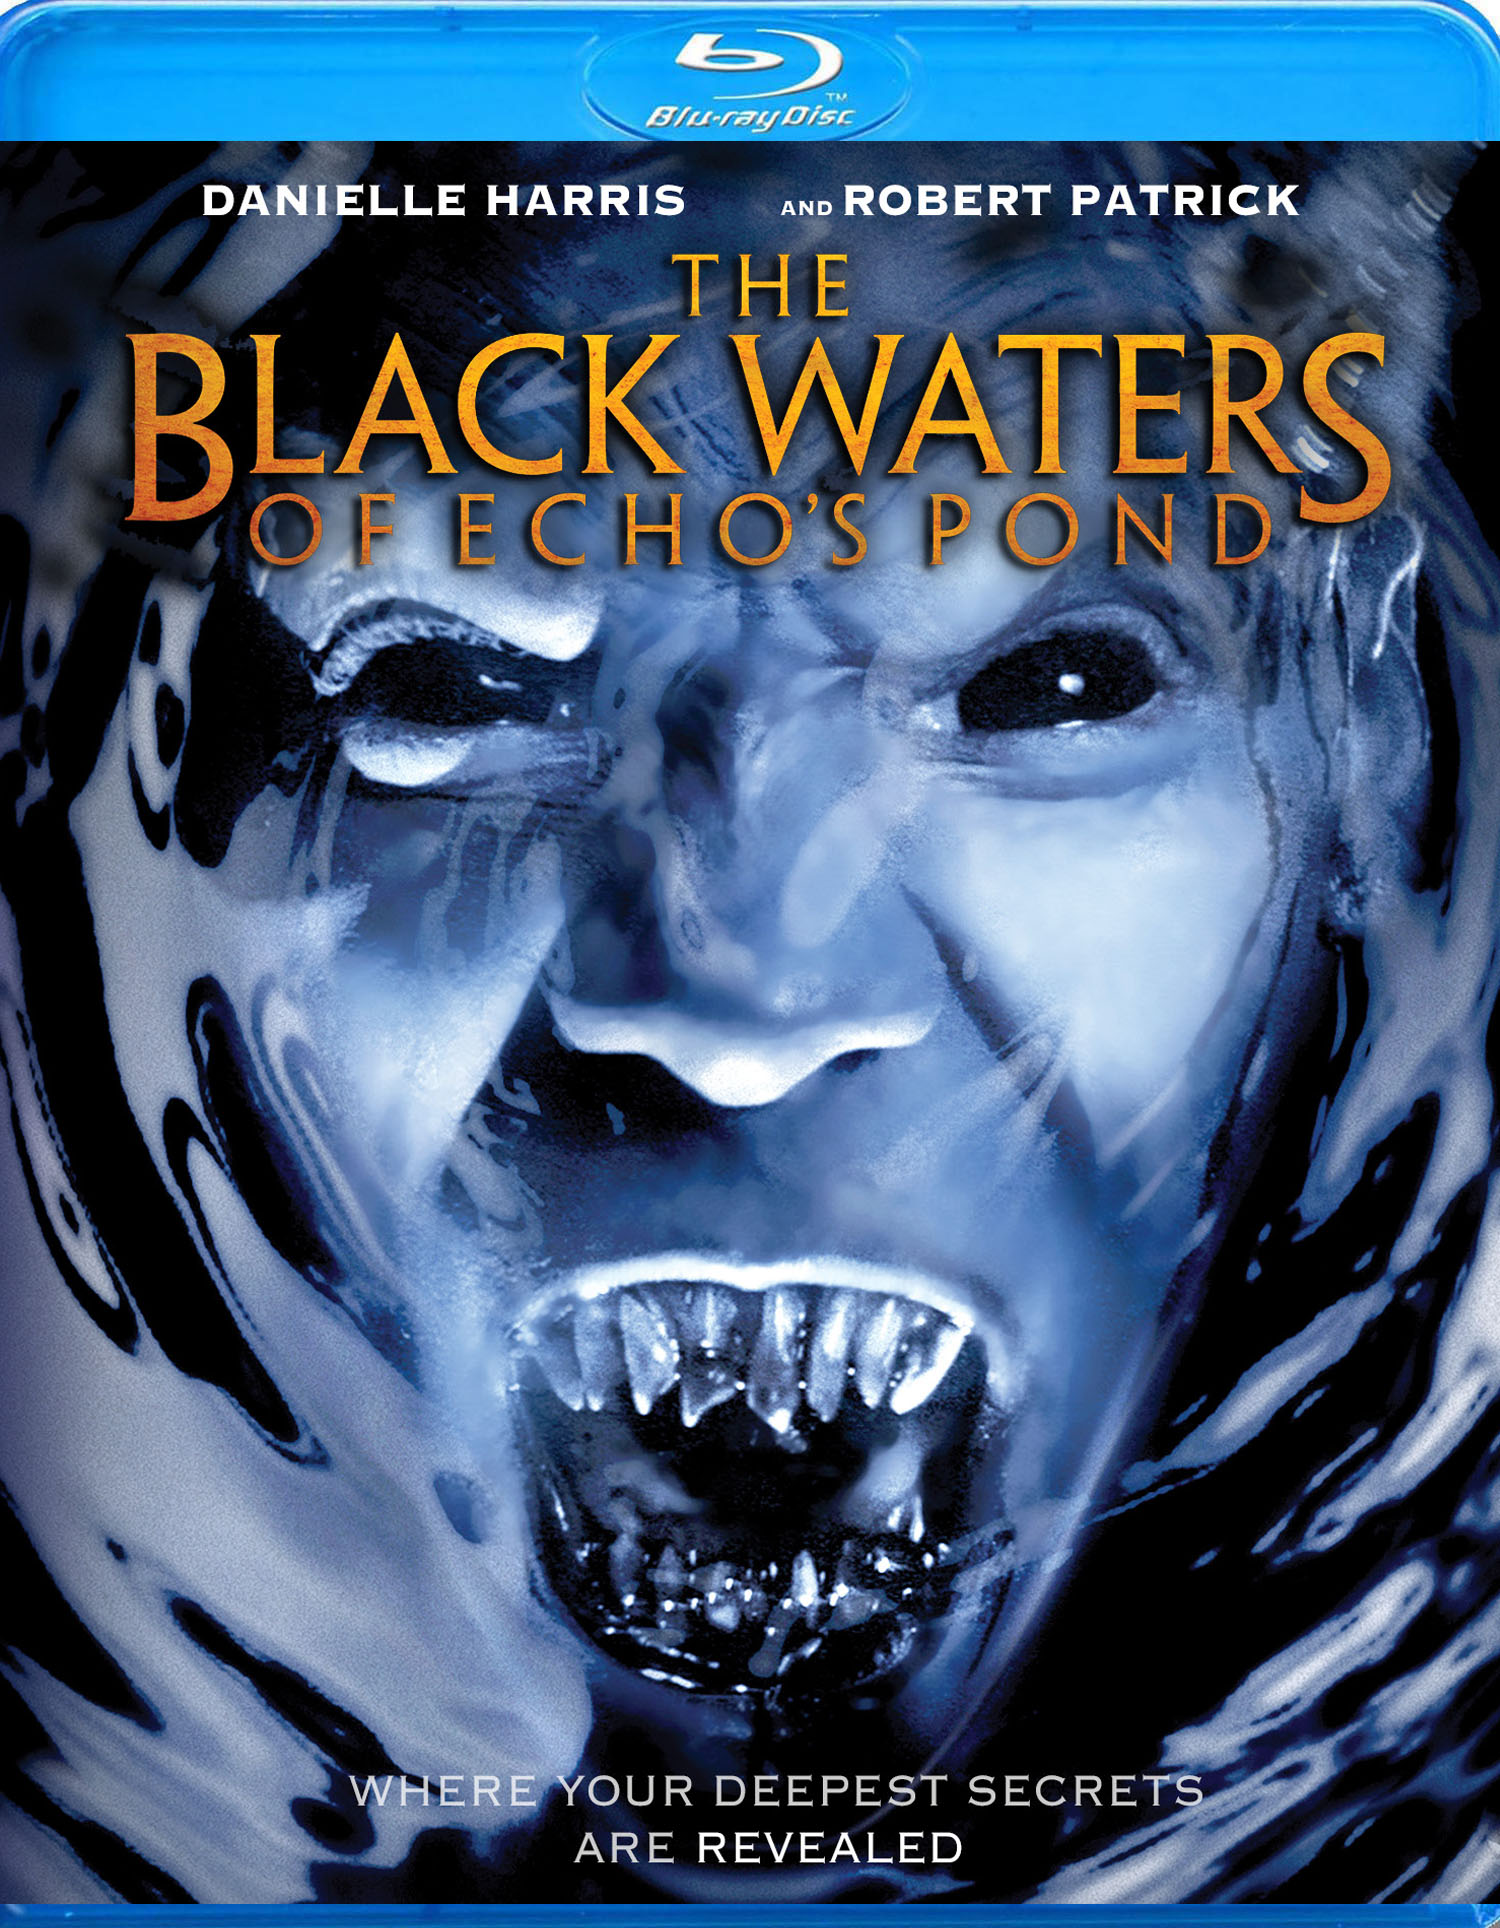 The Black Waters of Echo's Pond blu-ray